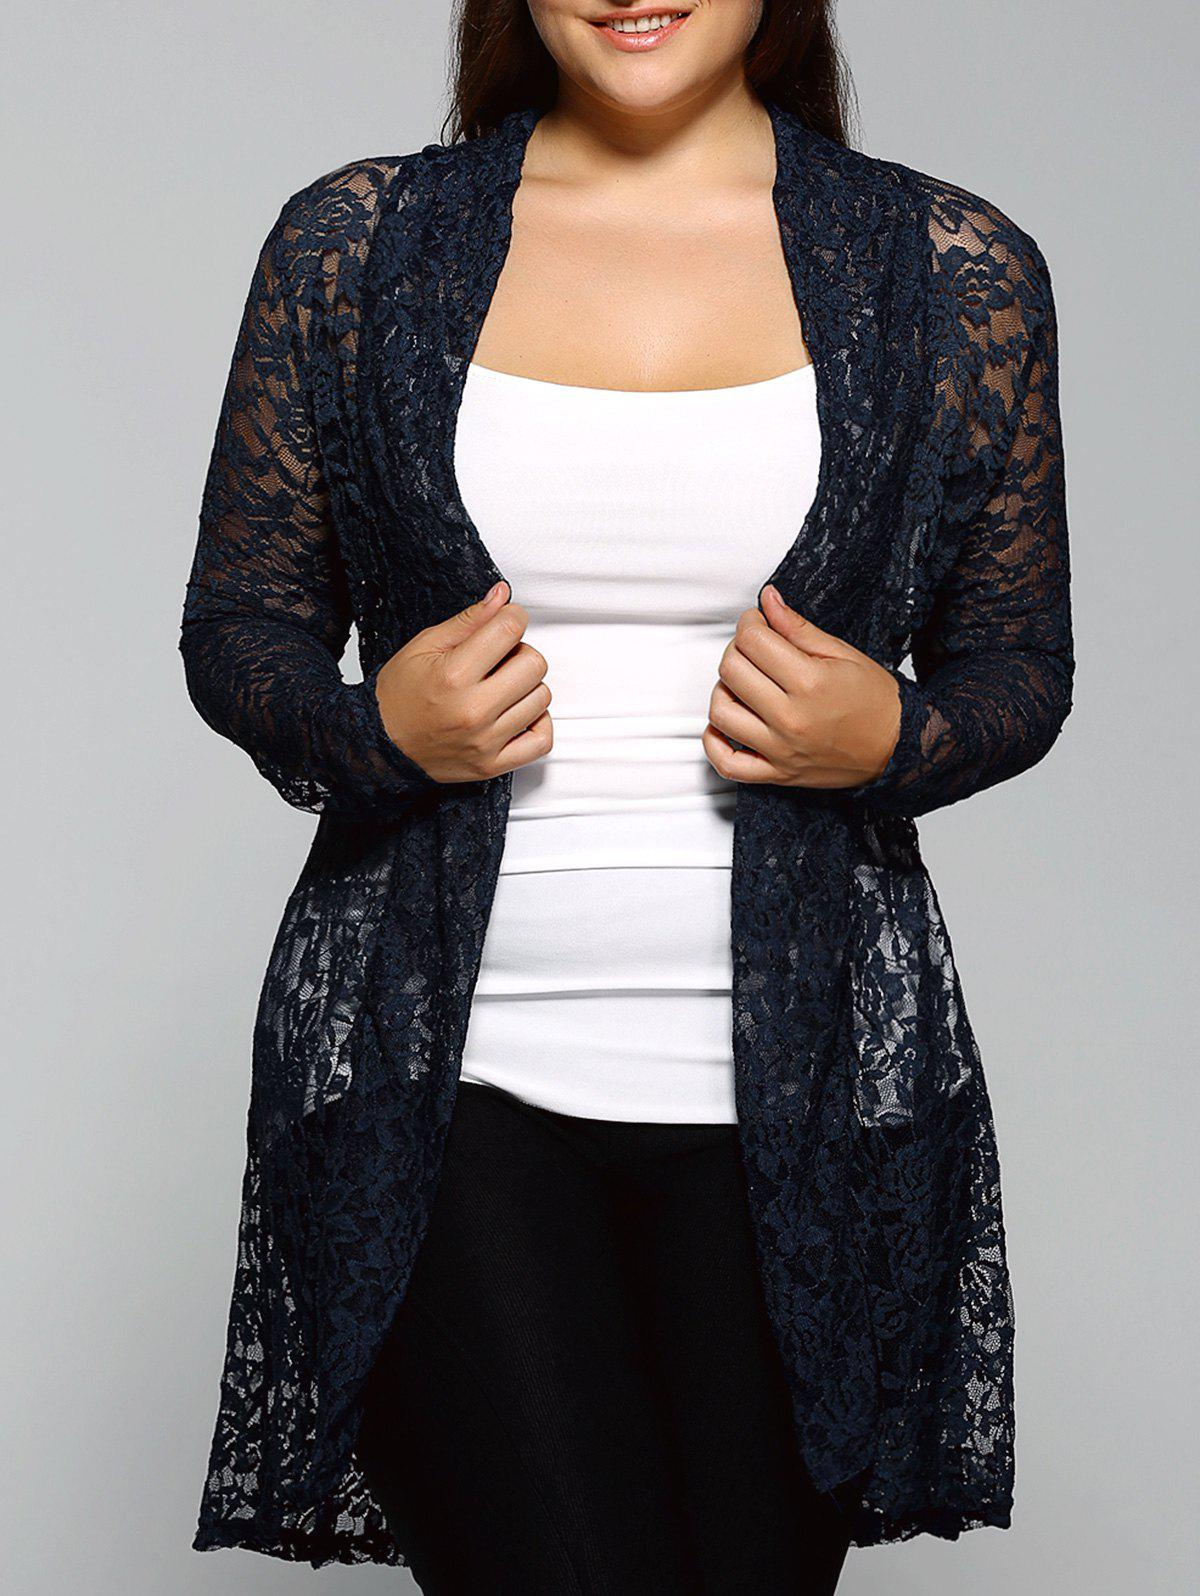 Collarless Plus Size Cut Out Lace BlouseWOMEN<br><br>Size: 3XL; Color: CADETBLUE; Material: Cotton,Polyester; Shirt Length: Long; Sleeve Length: Full; Collar: Collarless; Style: Fashion; Season: Fall; Pattern Type: Solid; Weight: 0.270kg; Package Contents: 1 x Blouse;